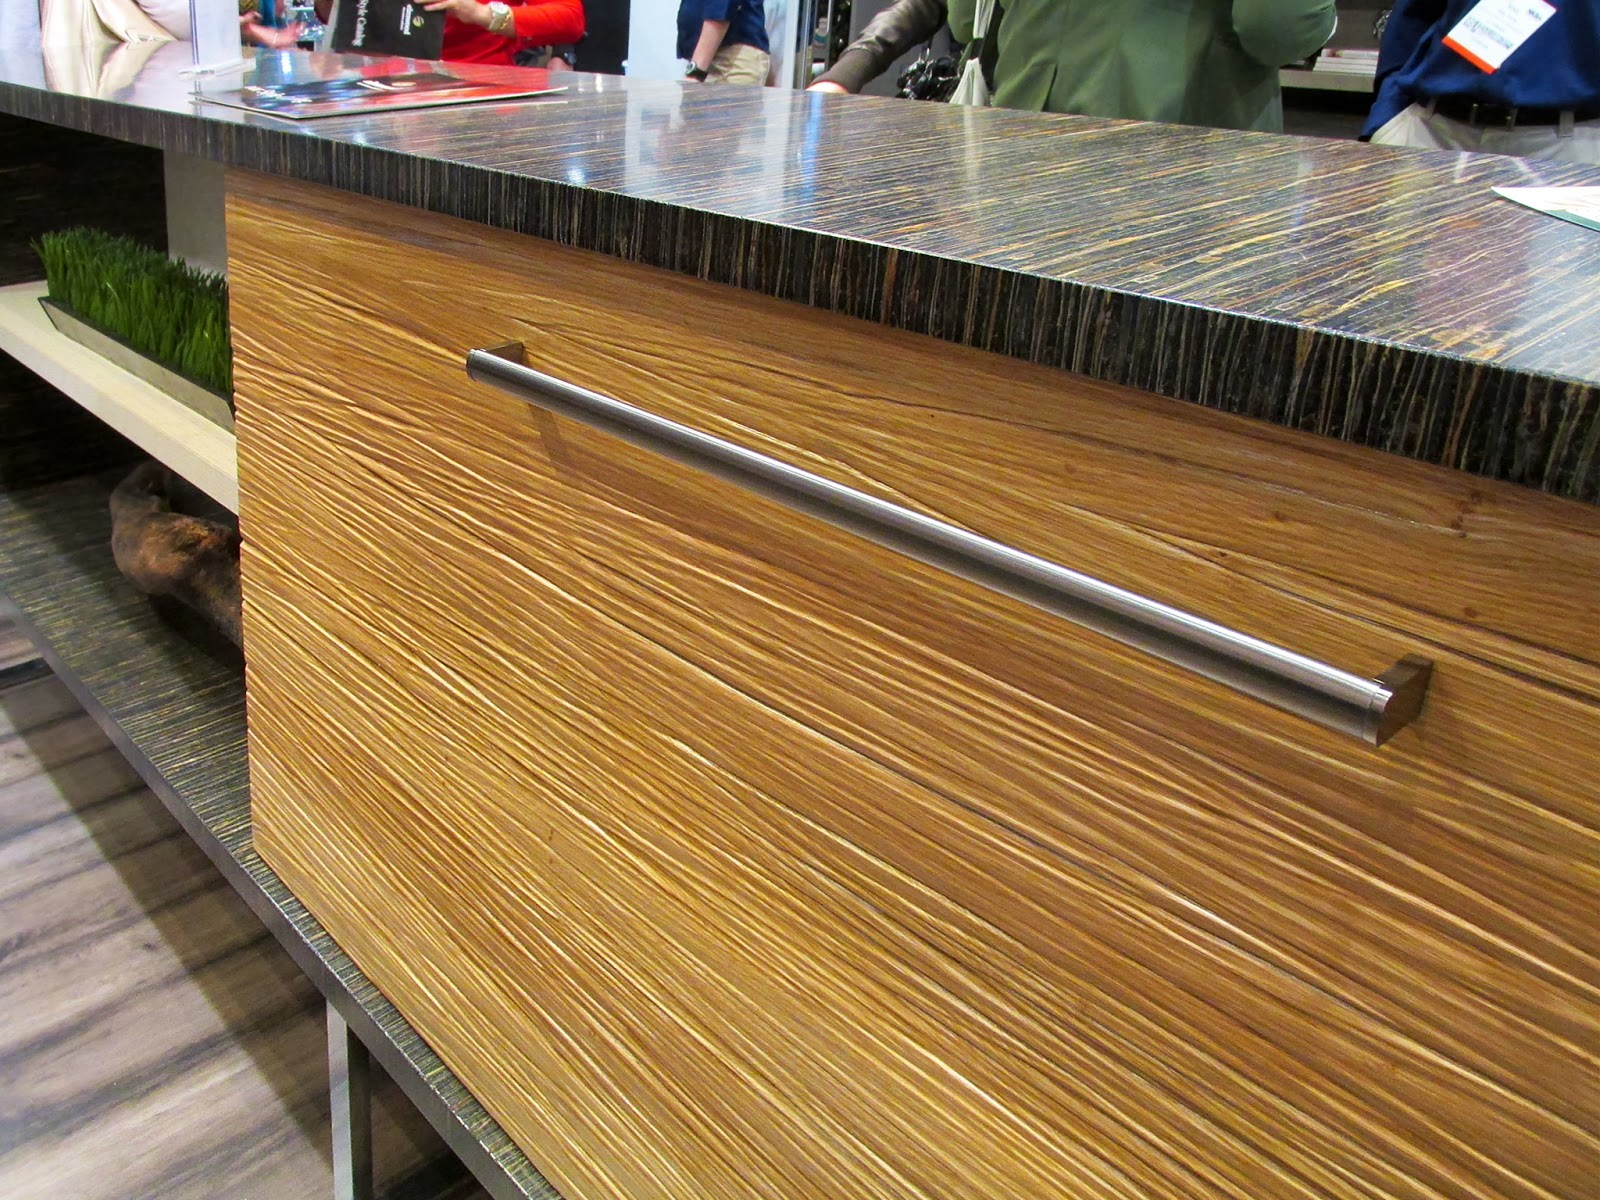 Textured materials are gaining in popularity, as they give an interesting tactile feel to cabinets and furniture.